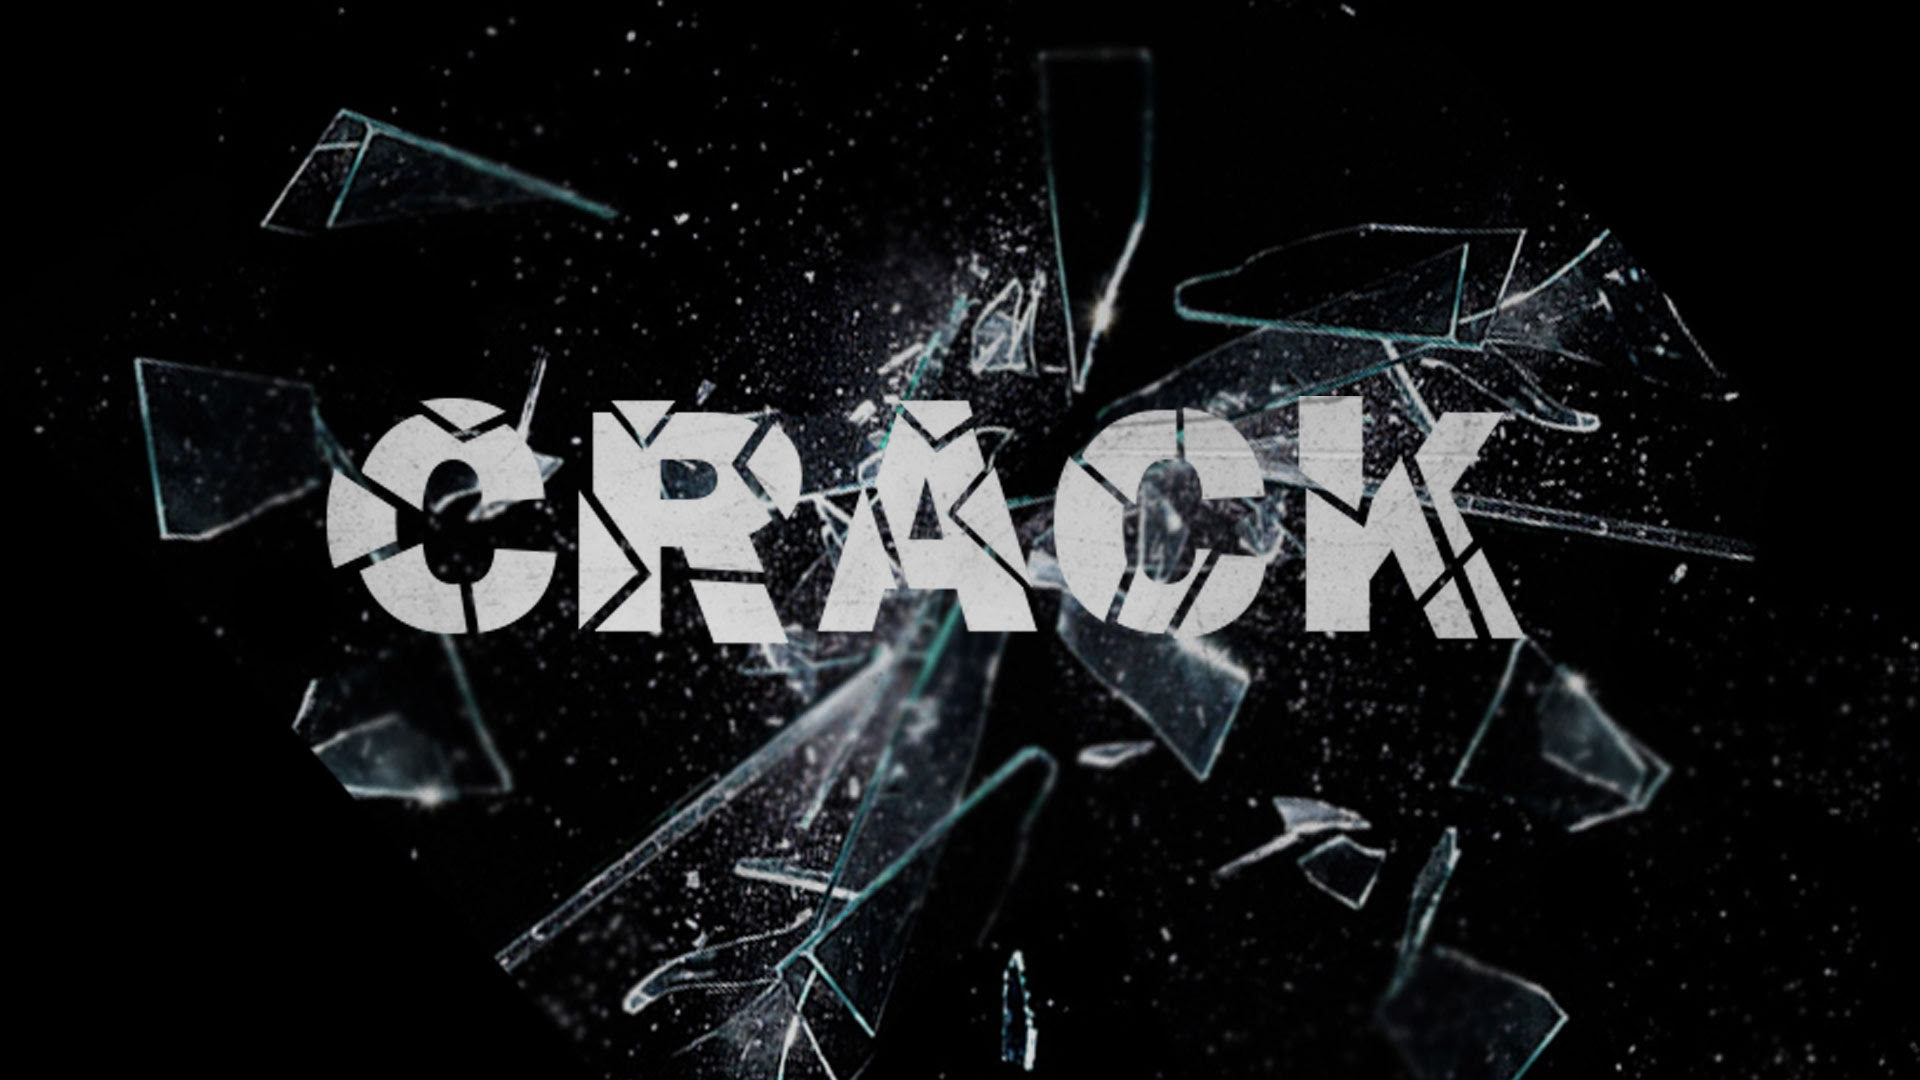 Awesome Mirror Crack Wallpaper [1920x1080]